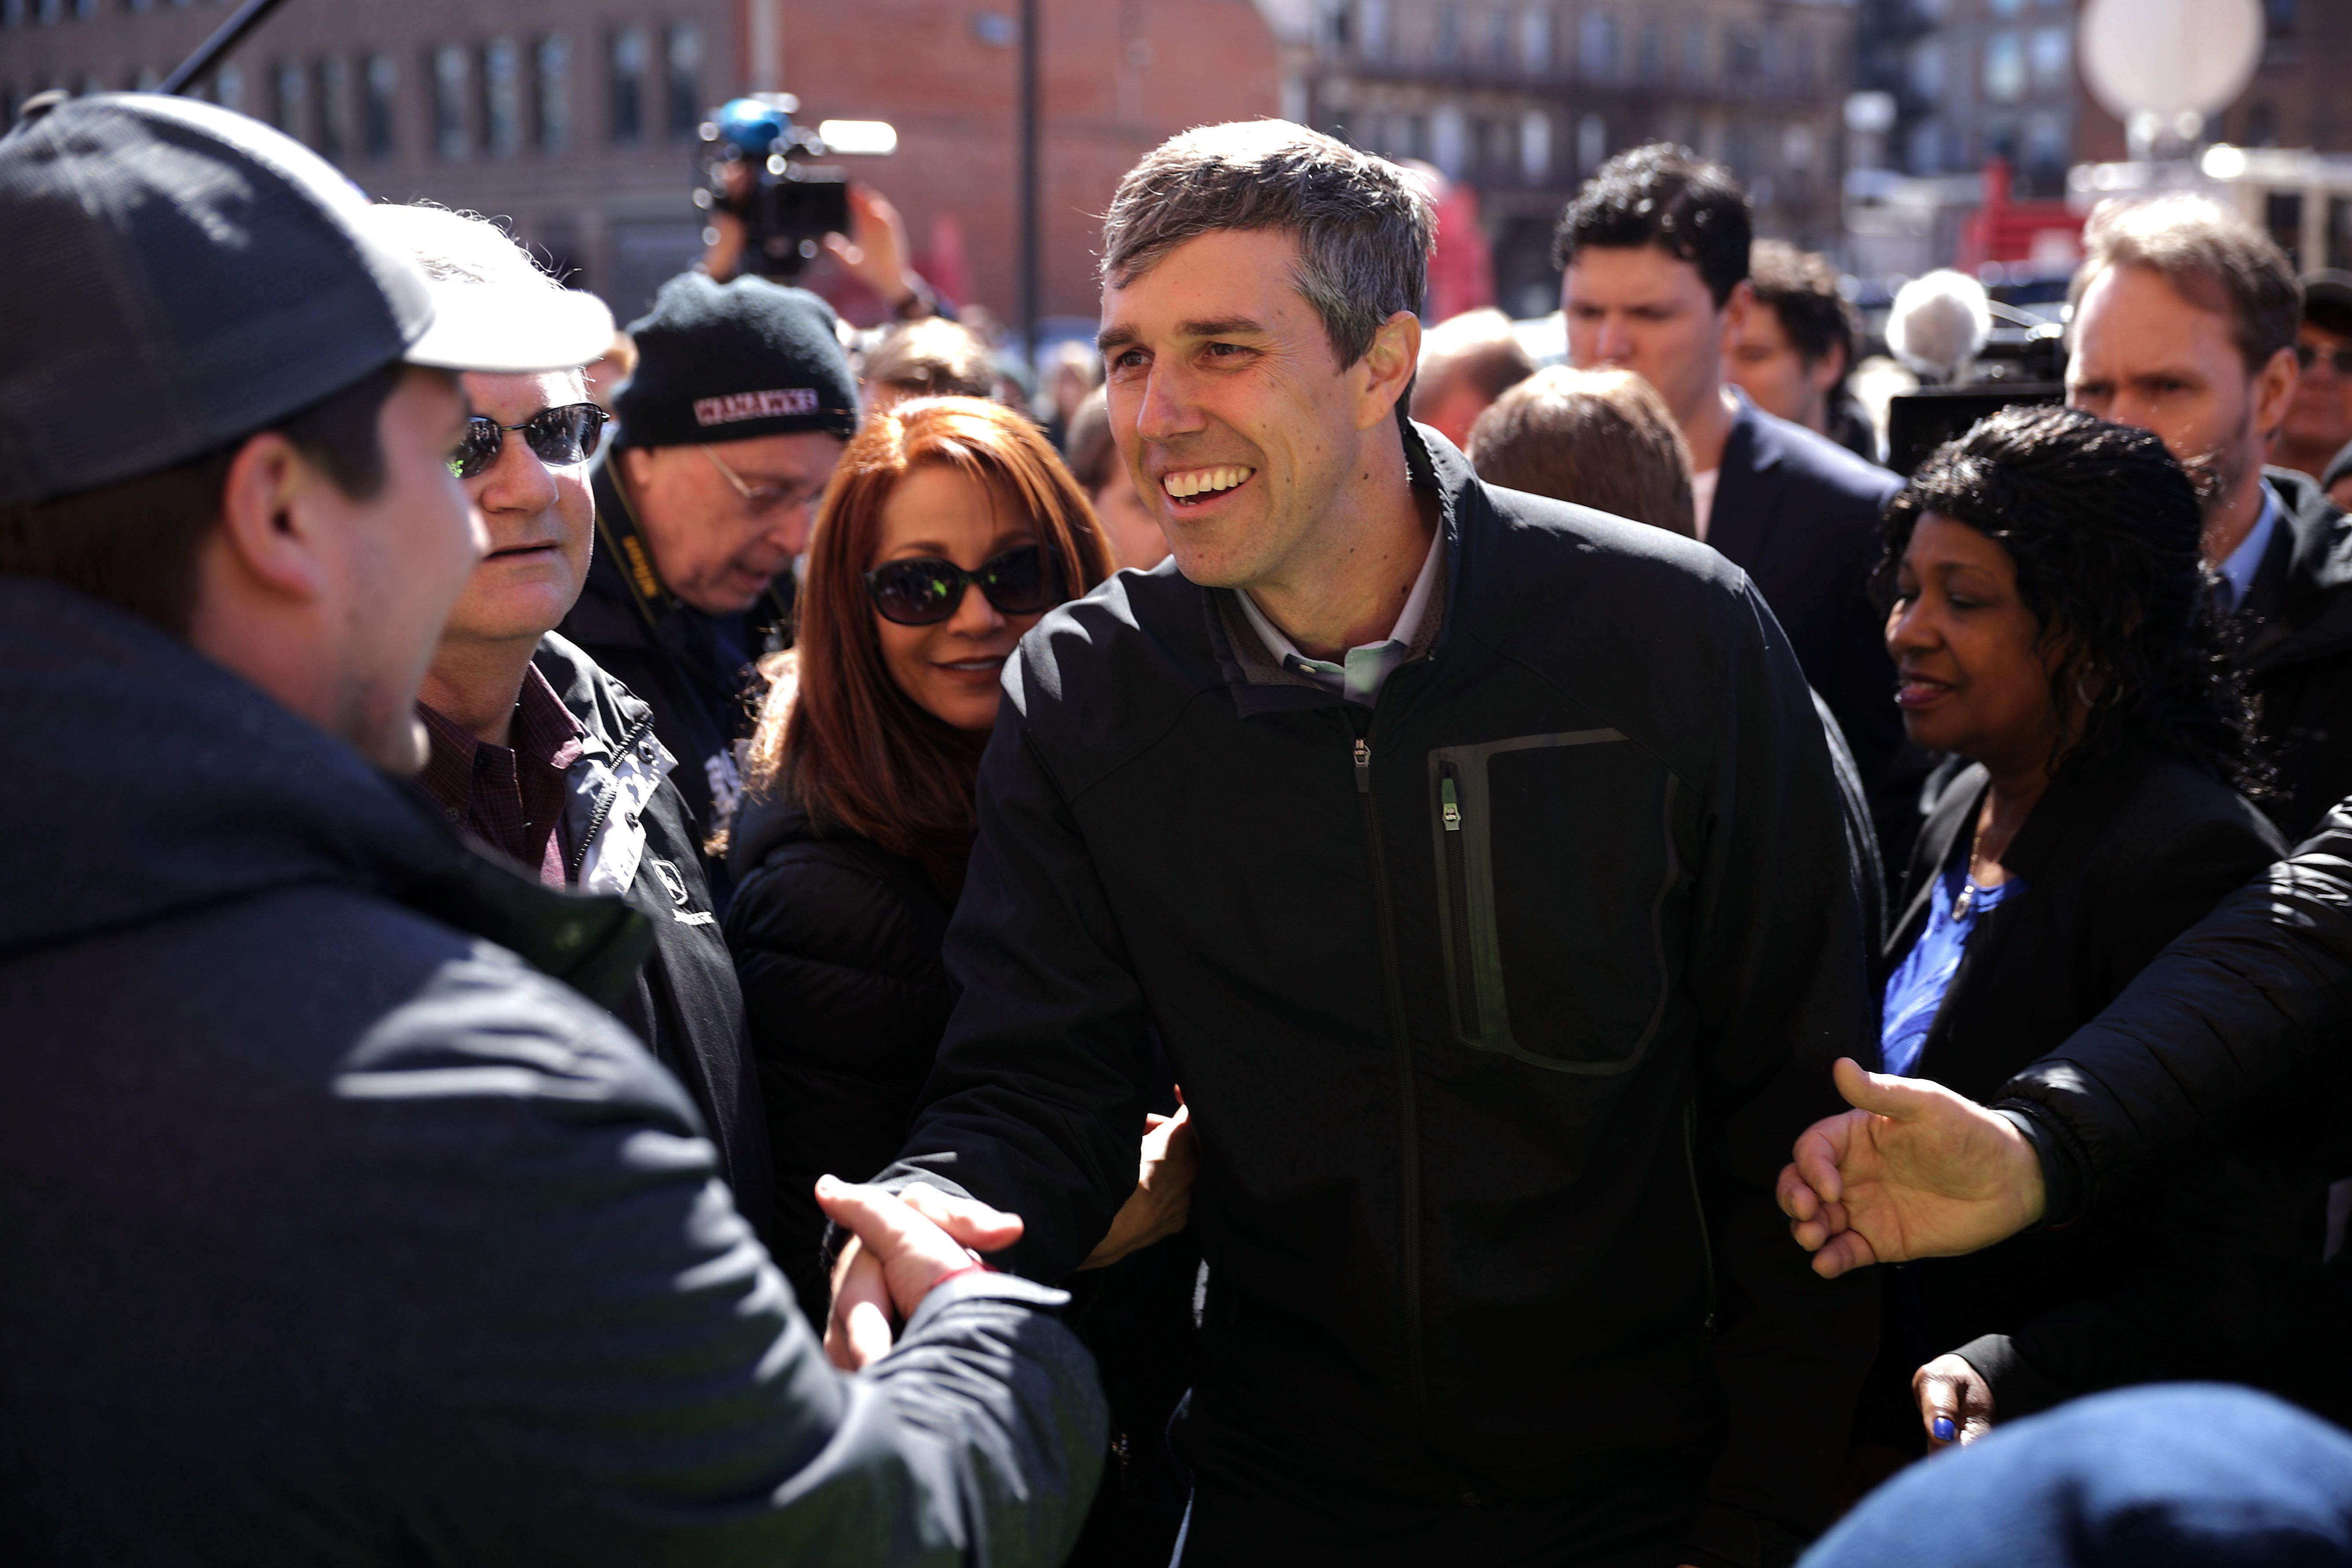 WATERLOO, IOWA - MARCH 16: Democratic presidential candidate Beto O'Rourke greets voters during a canvassing kickoff event with state senate candidate Eric Giddens March 16, 2019 in Waterloo, Iowa. After losing a long-shot race for U.S. Senate to Ted Cruz (R-TX), the 46-year-old O'Rourke is making his first campaign swing through Iowa after jumping into a crowded Democratic field this week. (Photo by Chip Somodevilla/Getty Images)